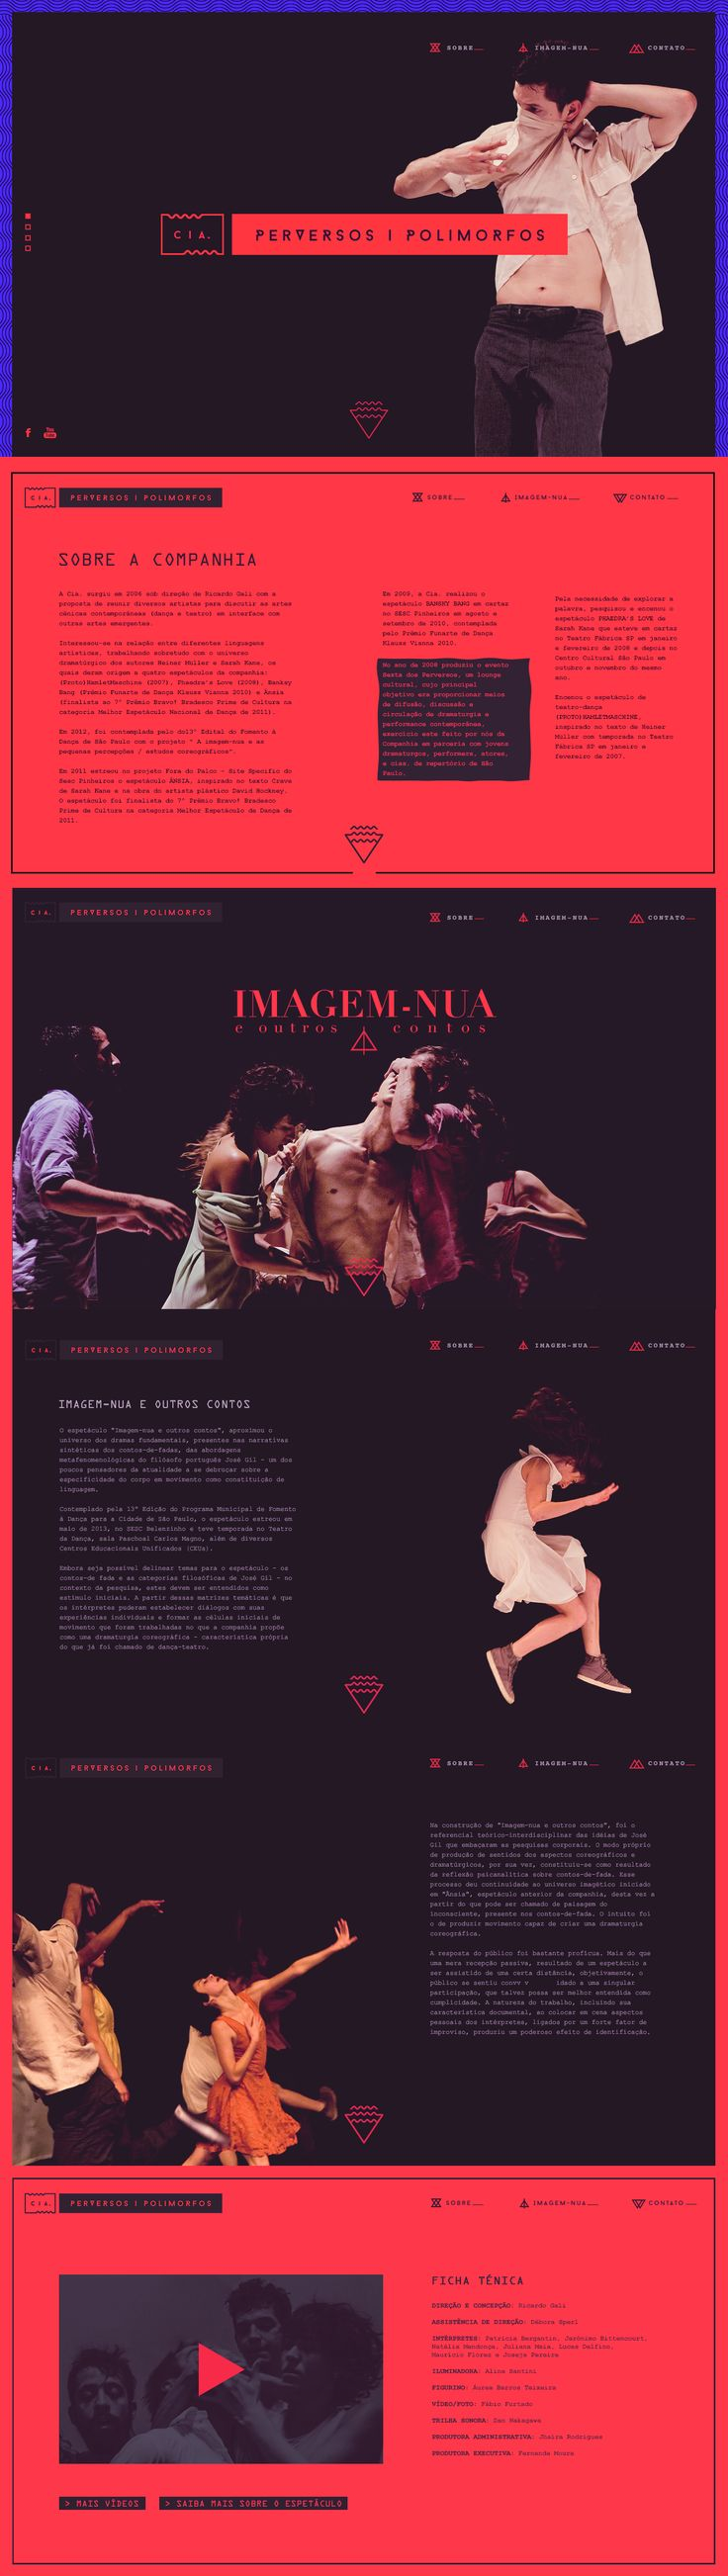 This website, and apparently the Spanish dance company it represents, CIA, oozes sex.